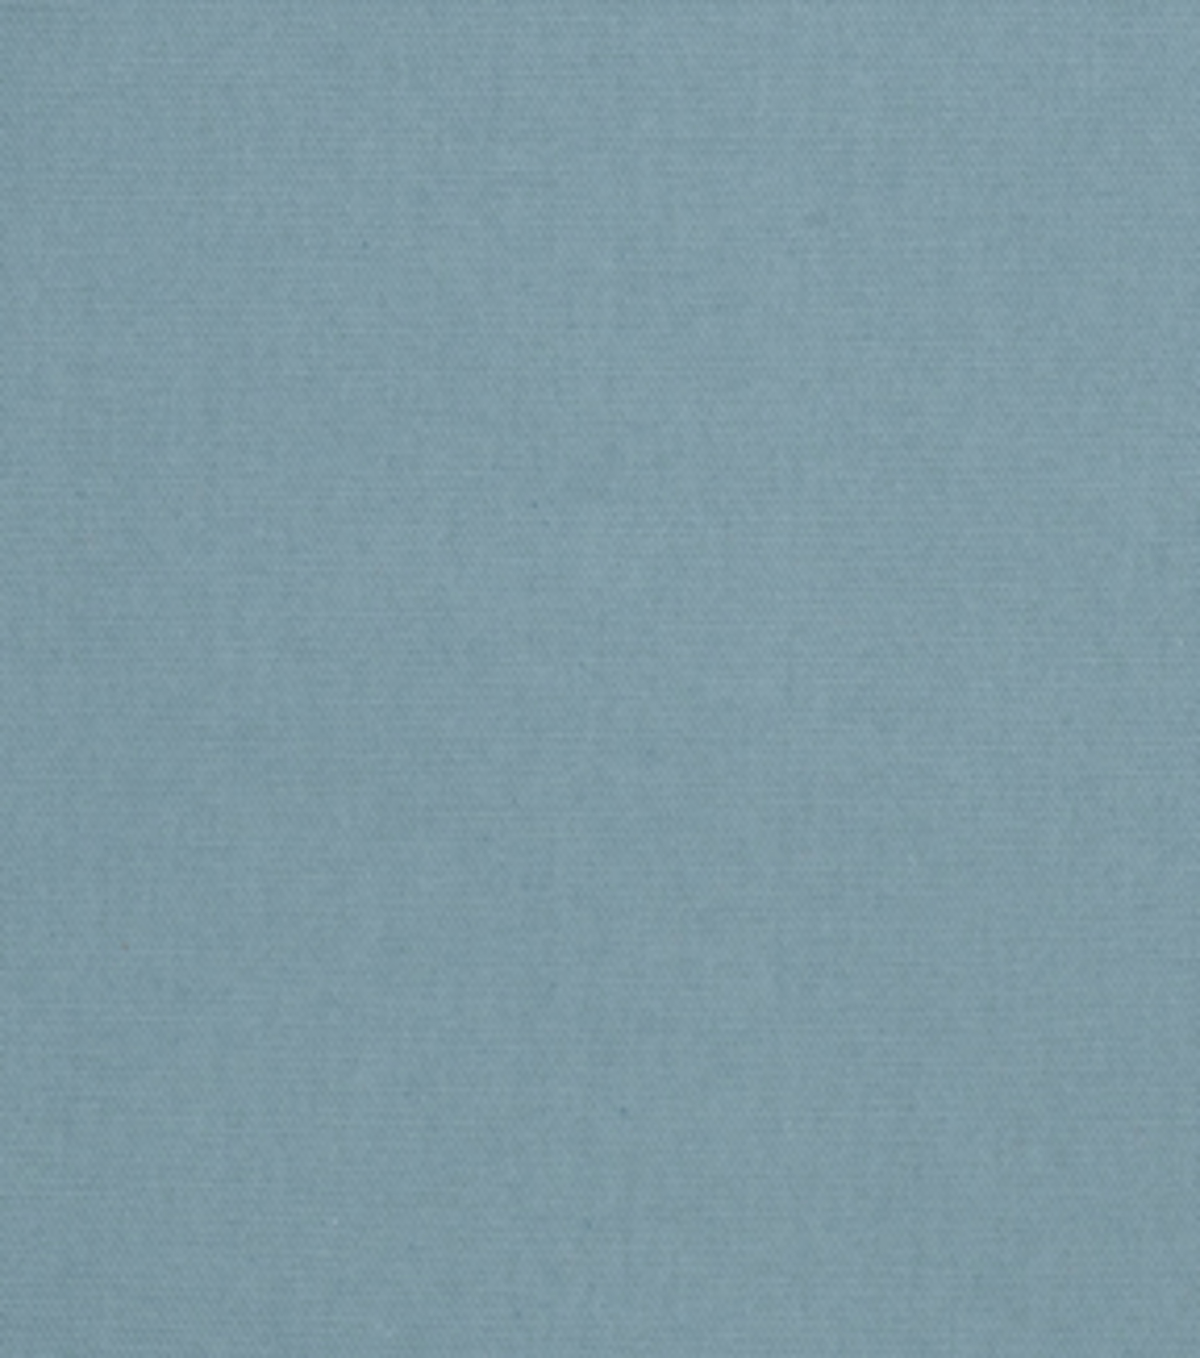 Home Decor 8\u0022x8\u0022 Fabric Swatch-Signature Series Legacy Cotton Turquoise